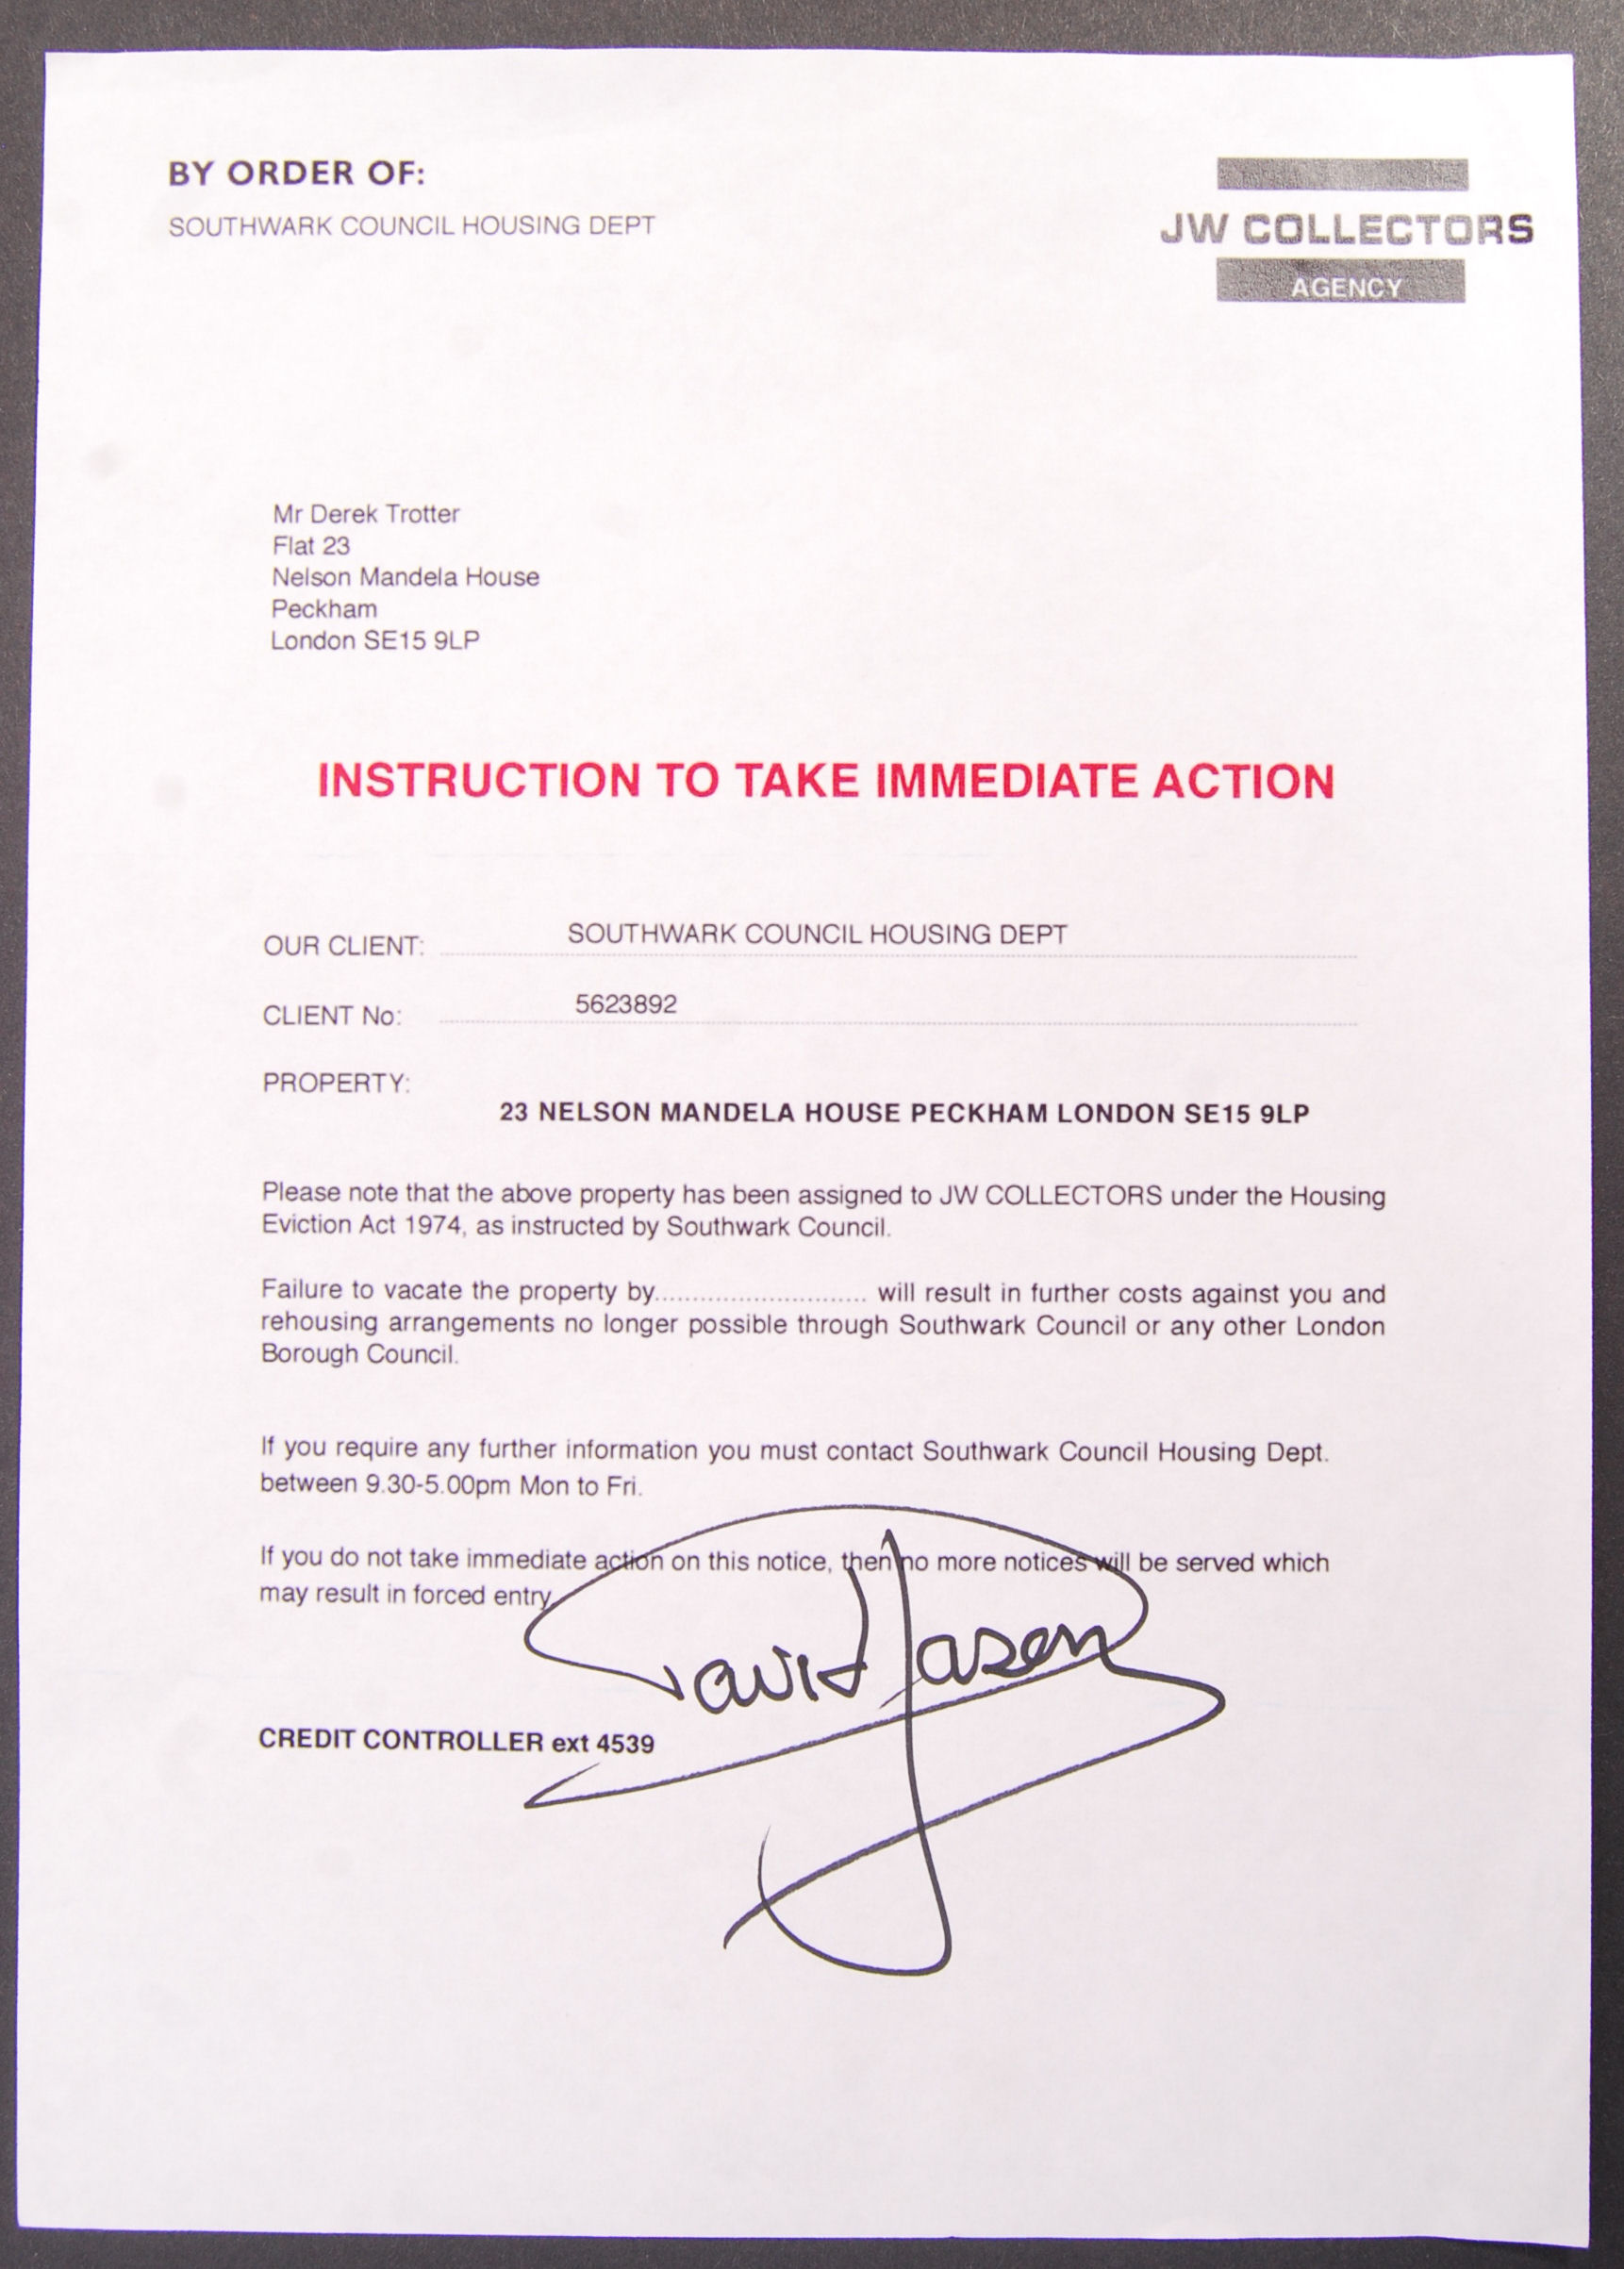 Lot 130 - ONLY FOOLS & HORSES - AUTOGRAPHED PROP LETTER